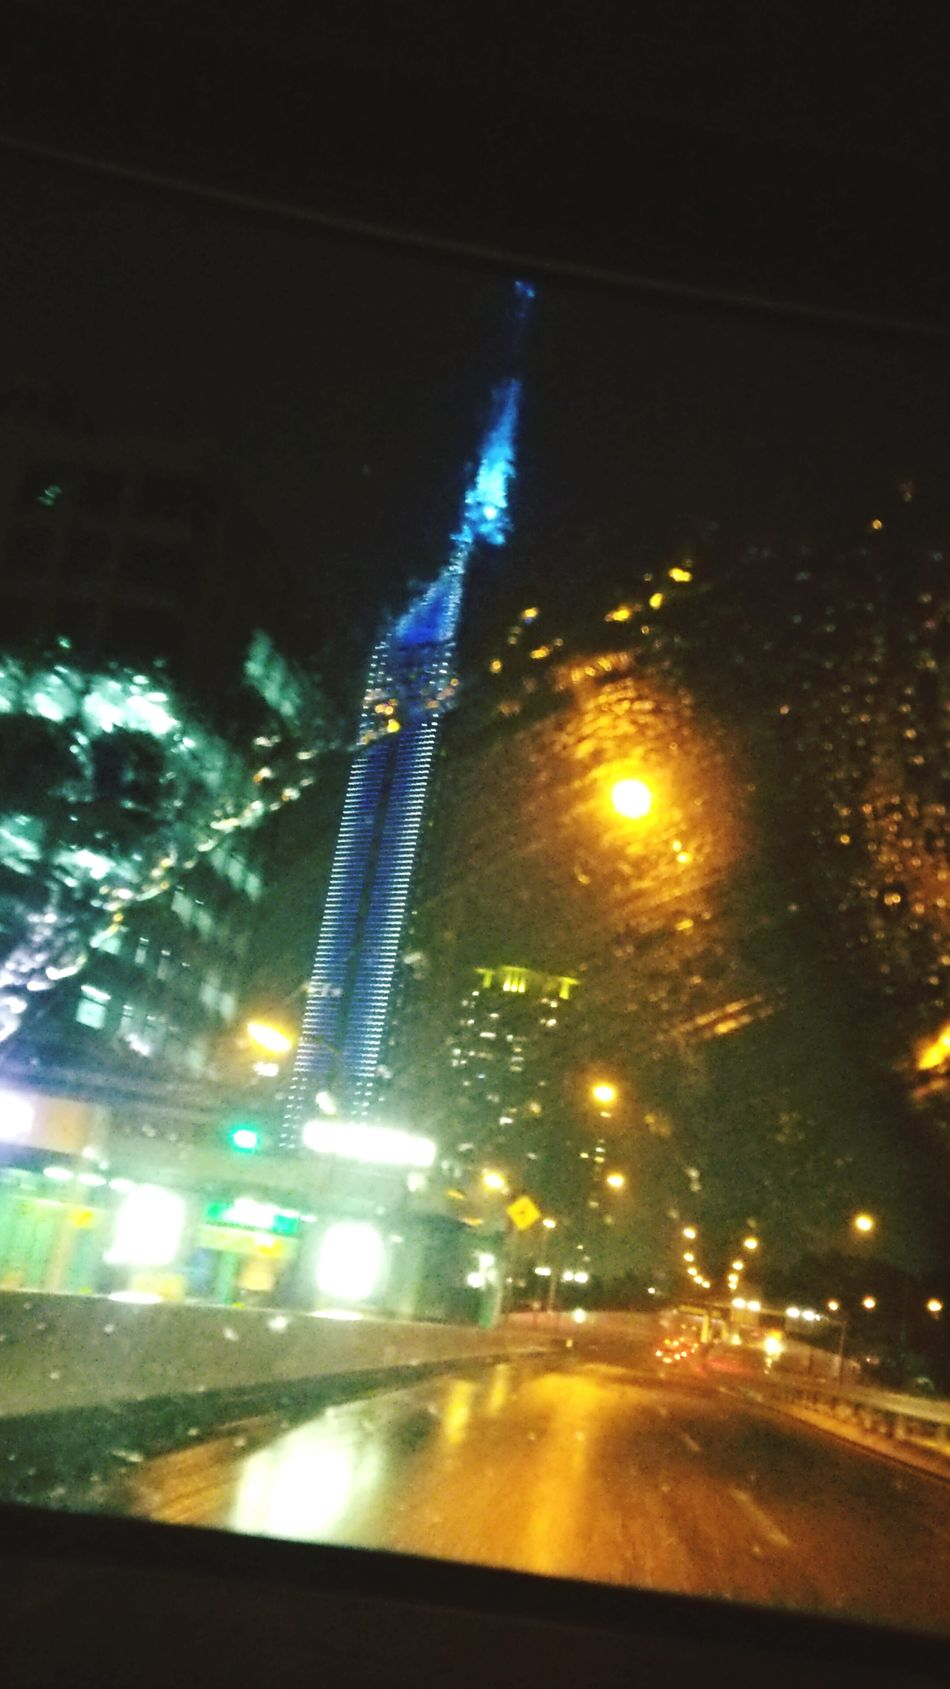 The urban expressway where it rain. Fukuoka Tower Rain In The Car Urban Expressway Night View From The Car Window Japan AQUEOUS PHONE